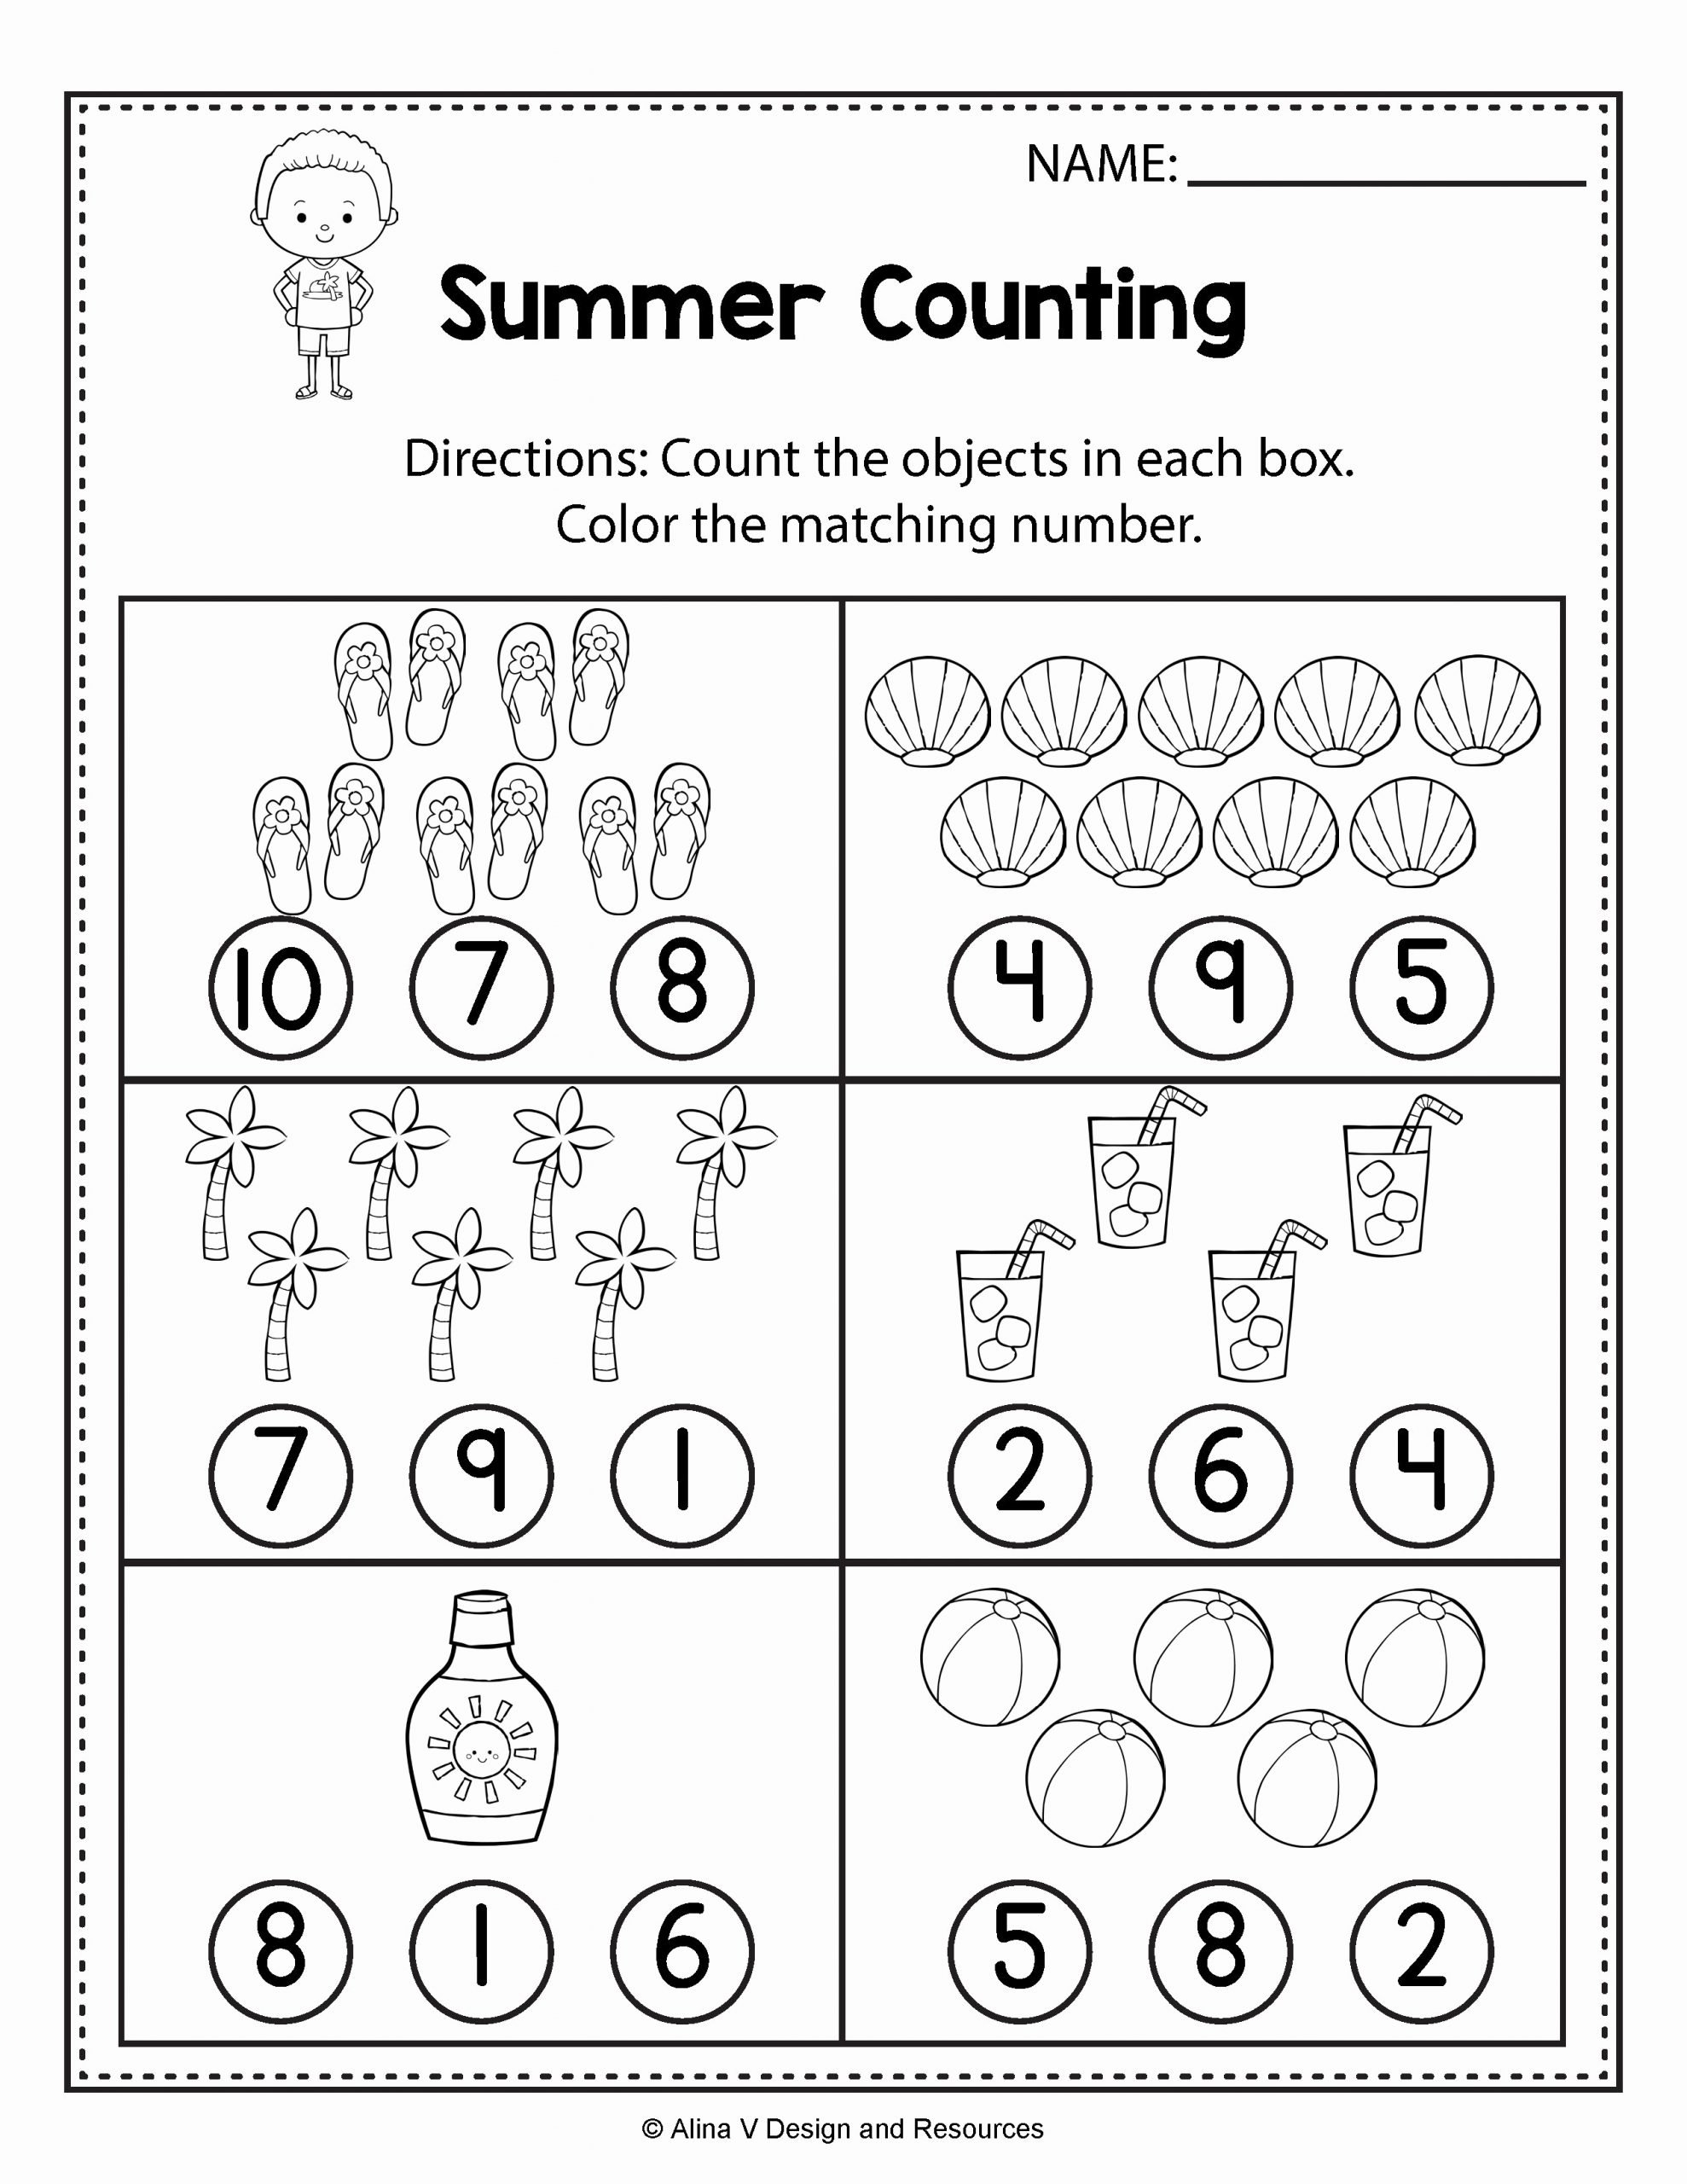 Counting Bugs Worksheets for Preschoolers Free Free Worksheets for Preschool and Kindergarten